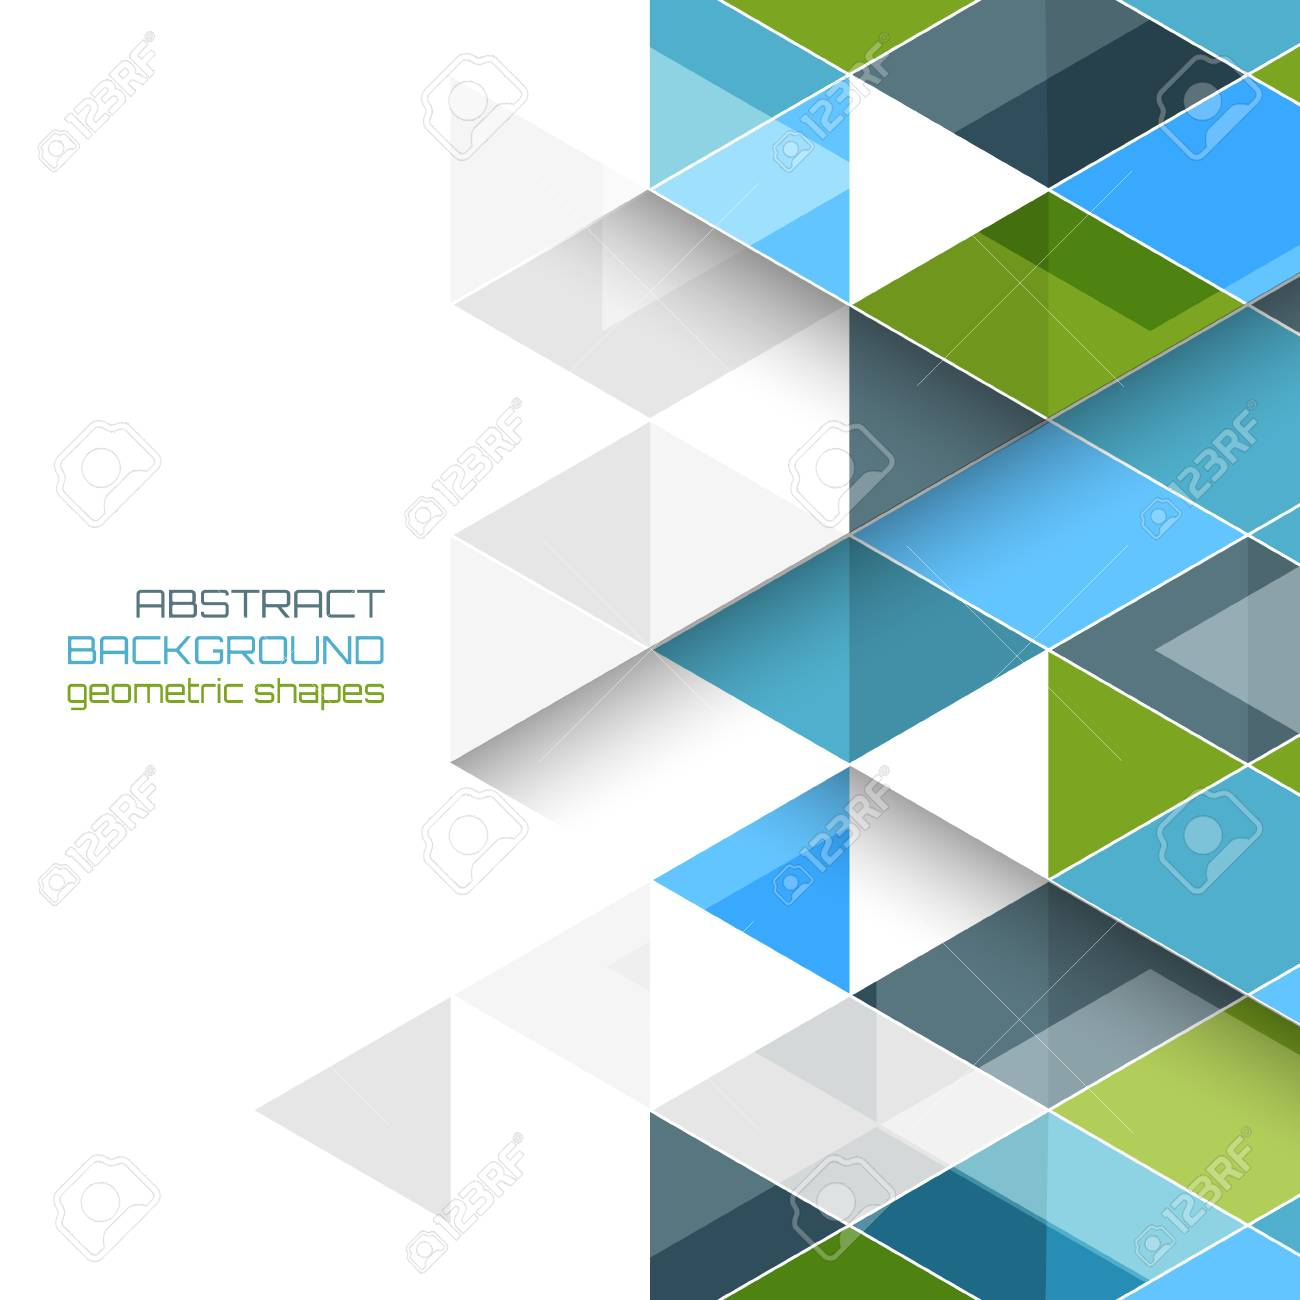 abstract vector background with geometric shapes. design with